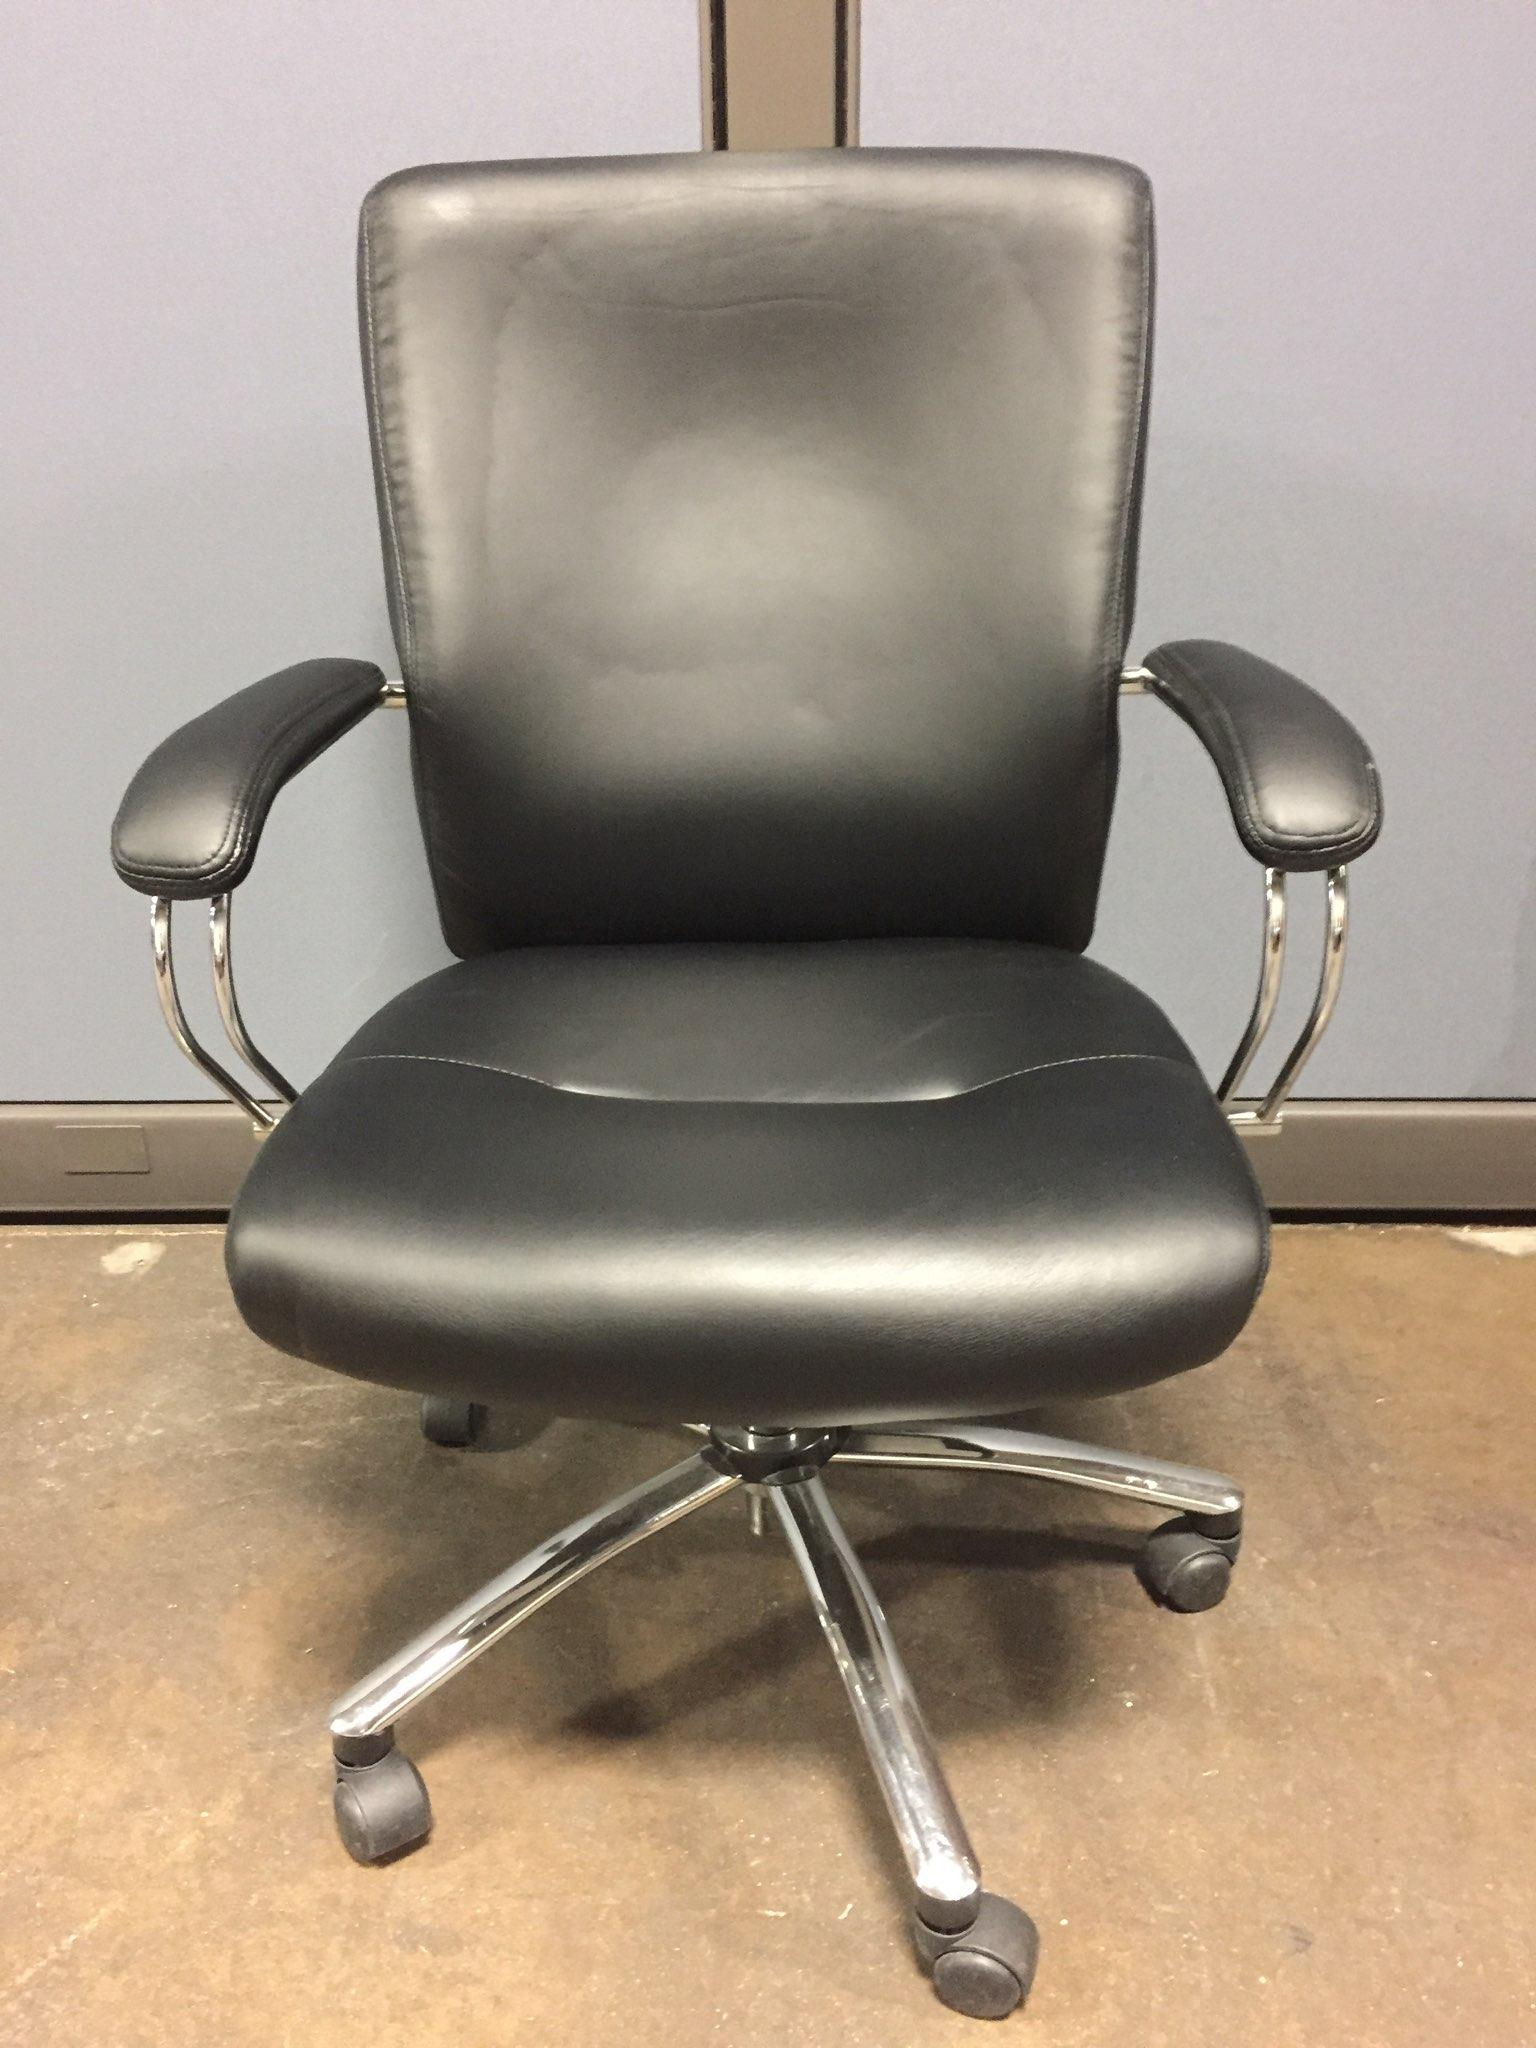 OB716 Office Chair $50, Only 1